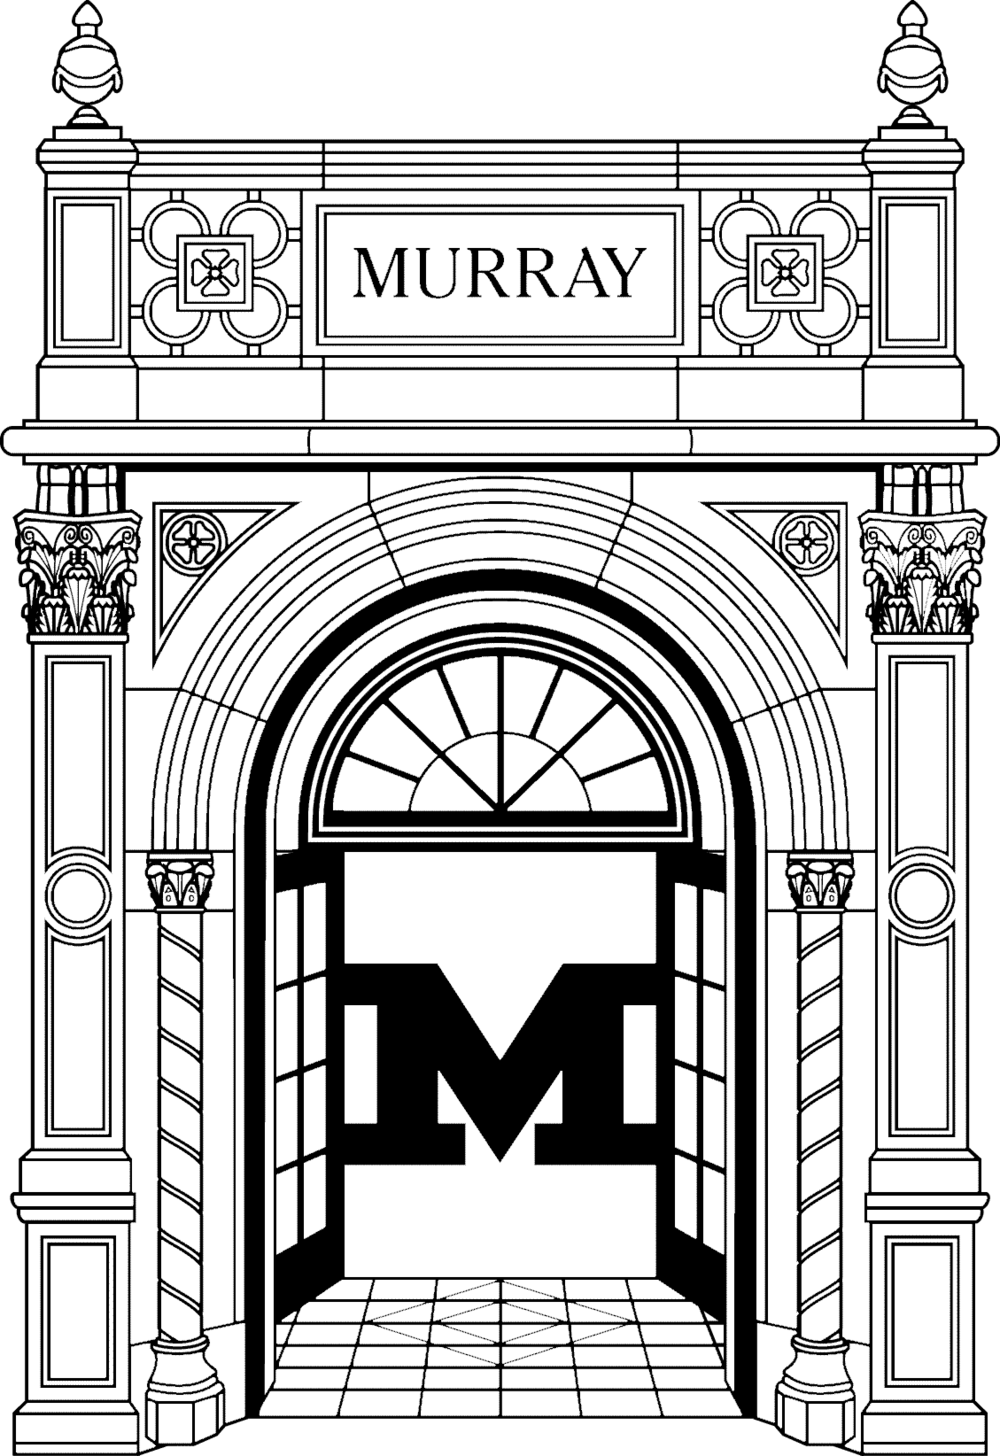 Murray independent.png